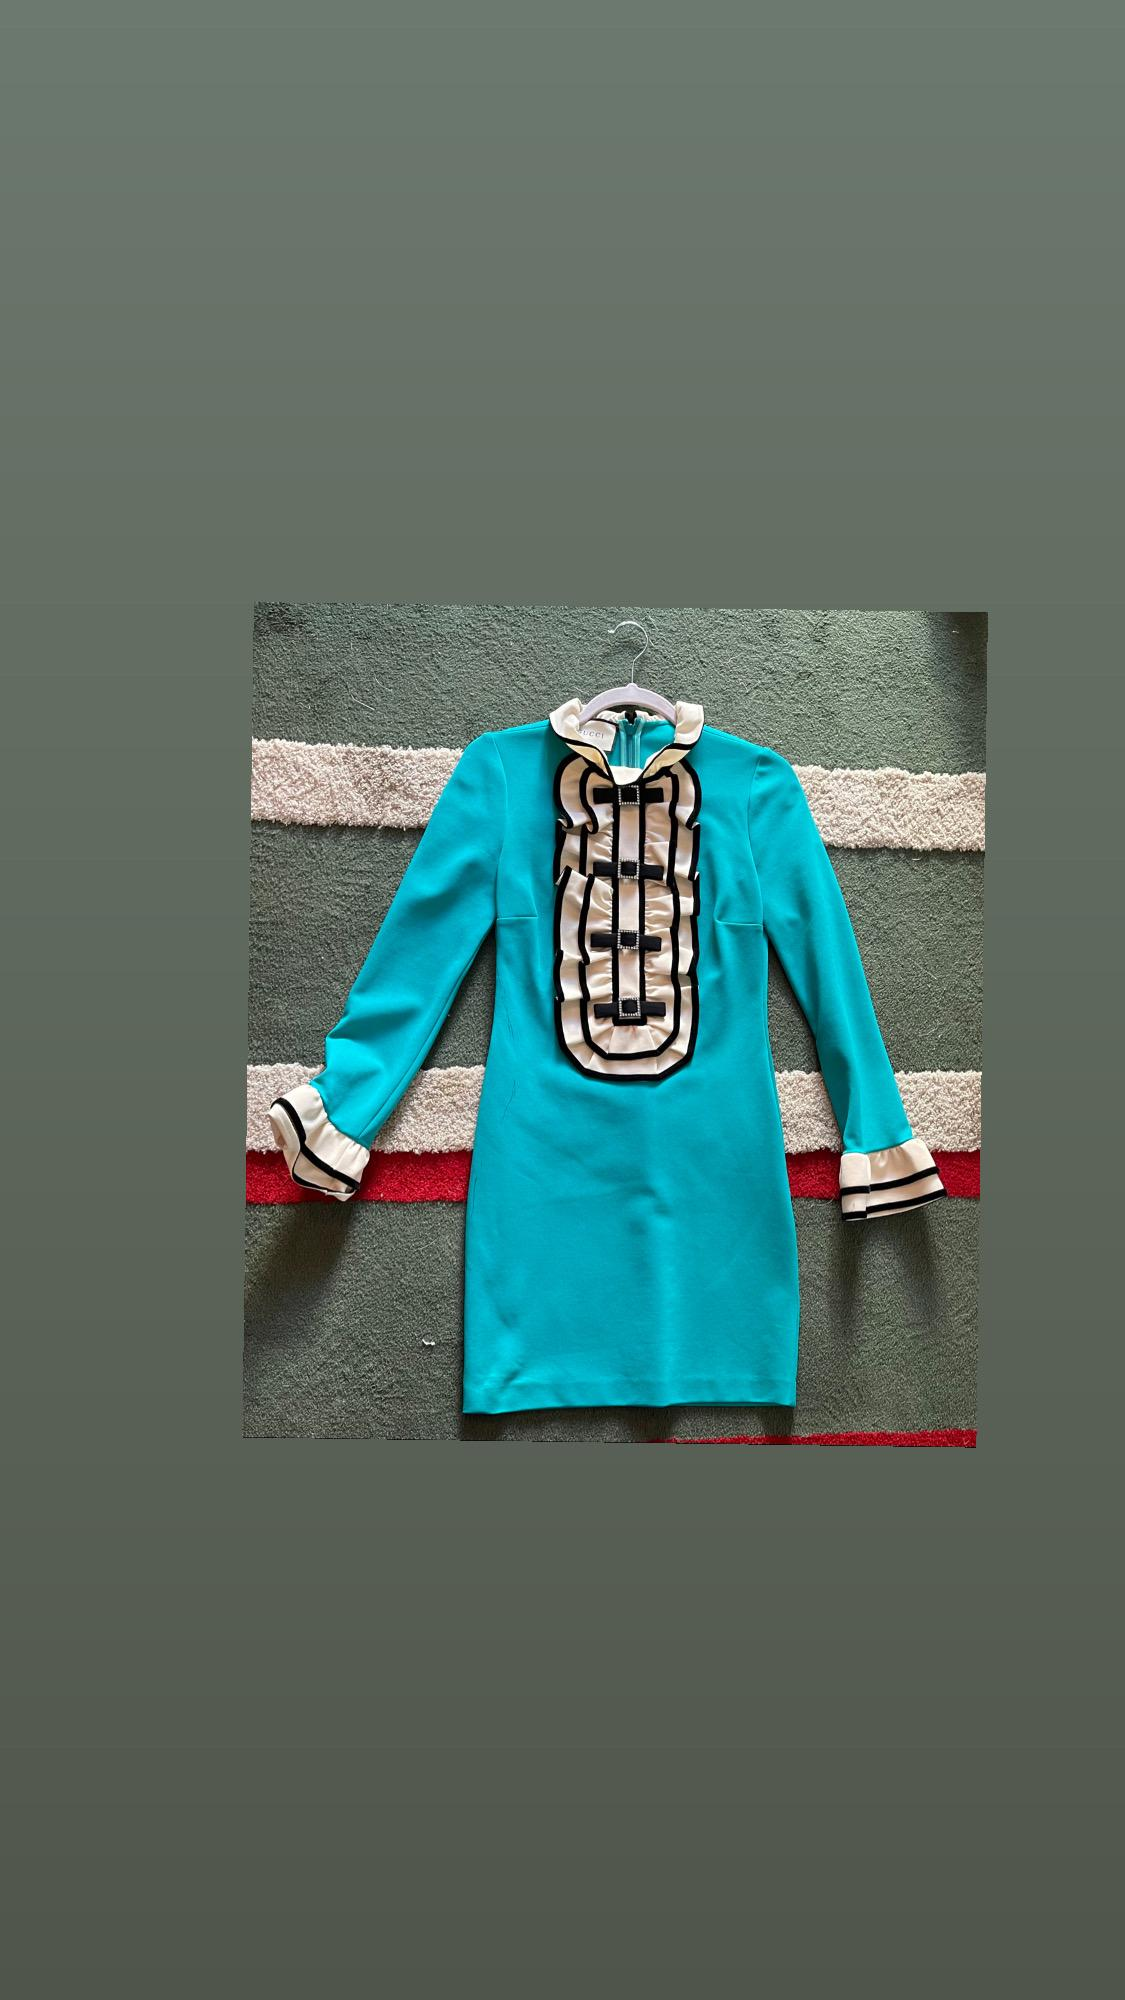 Gucci turquoise dress